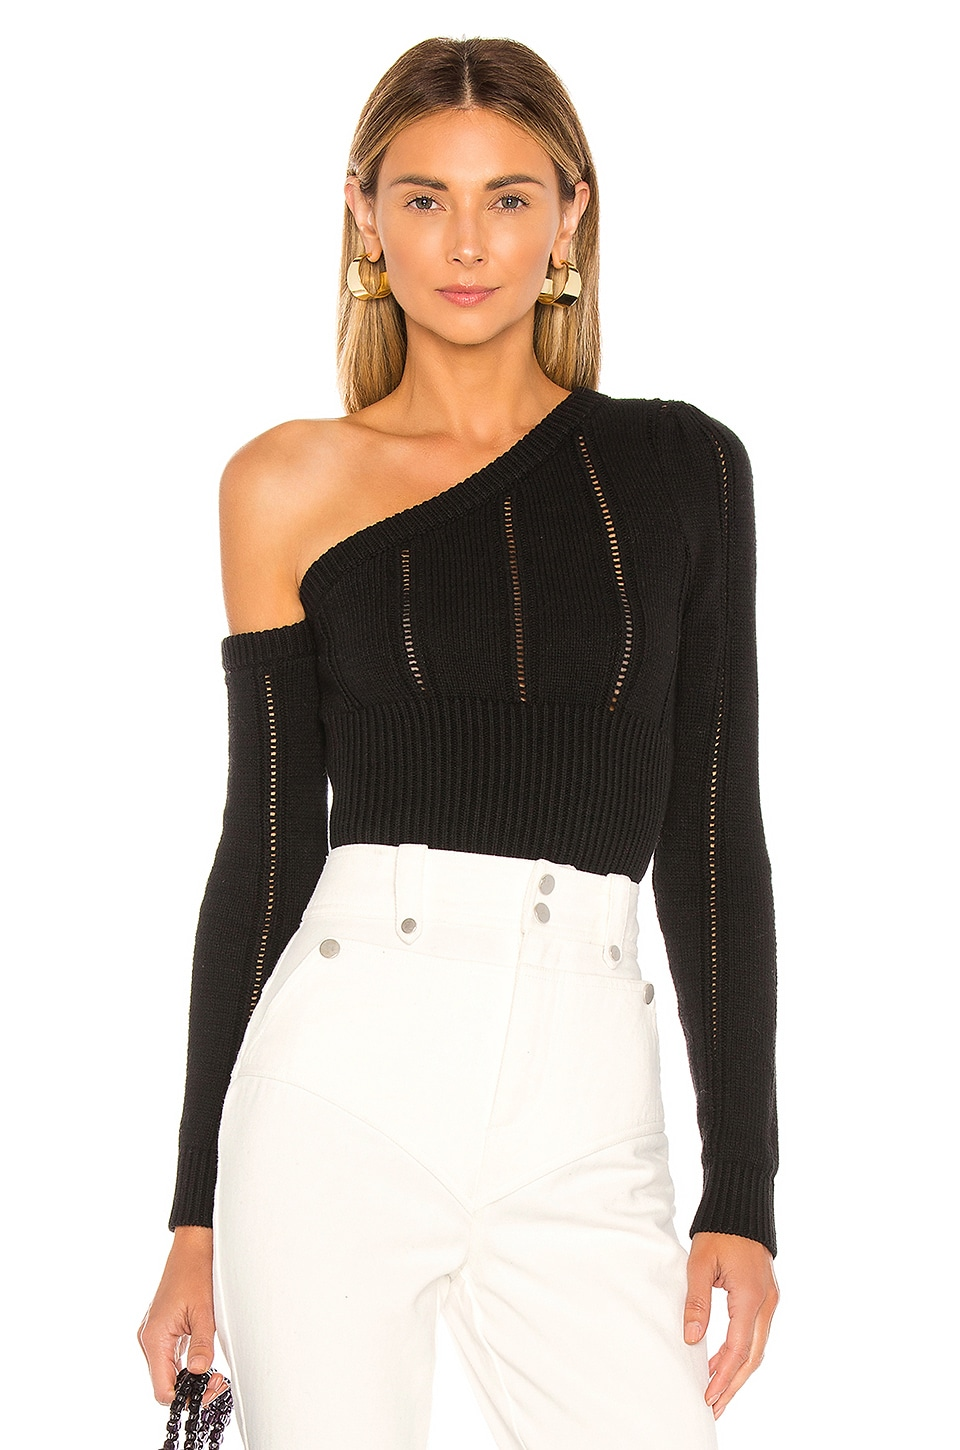 MAJORELLE Landau Sweater in Black